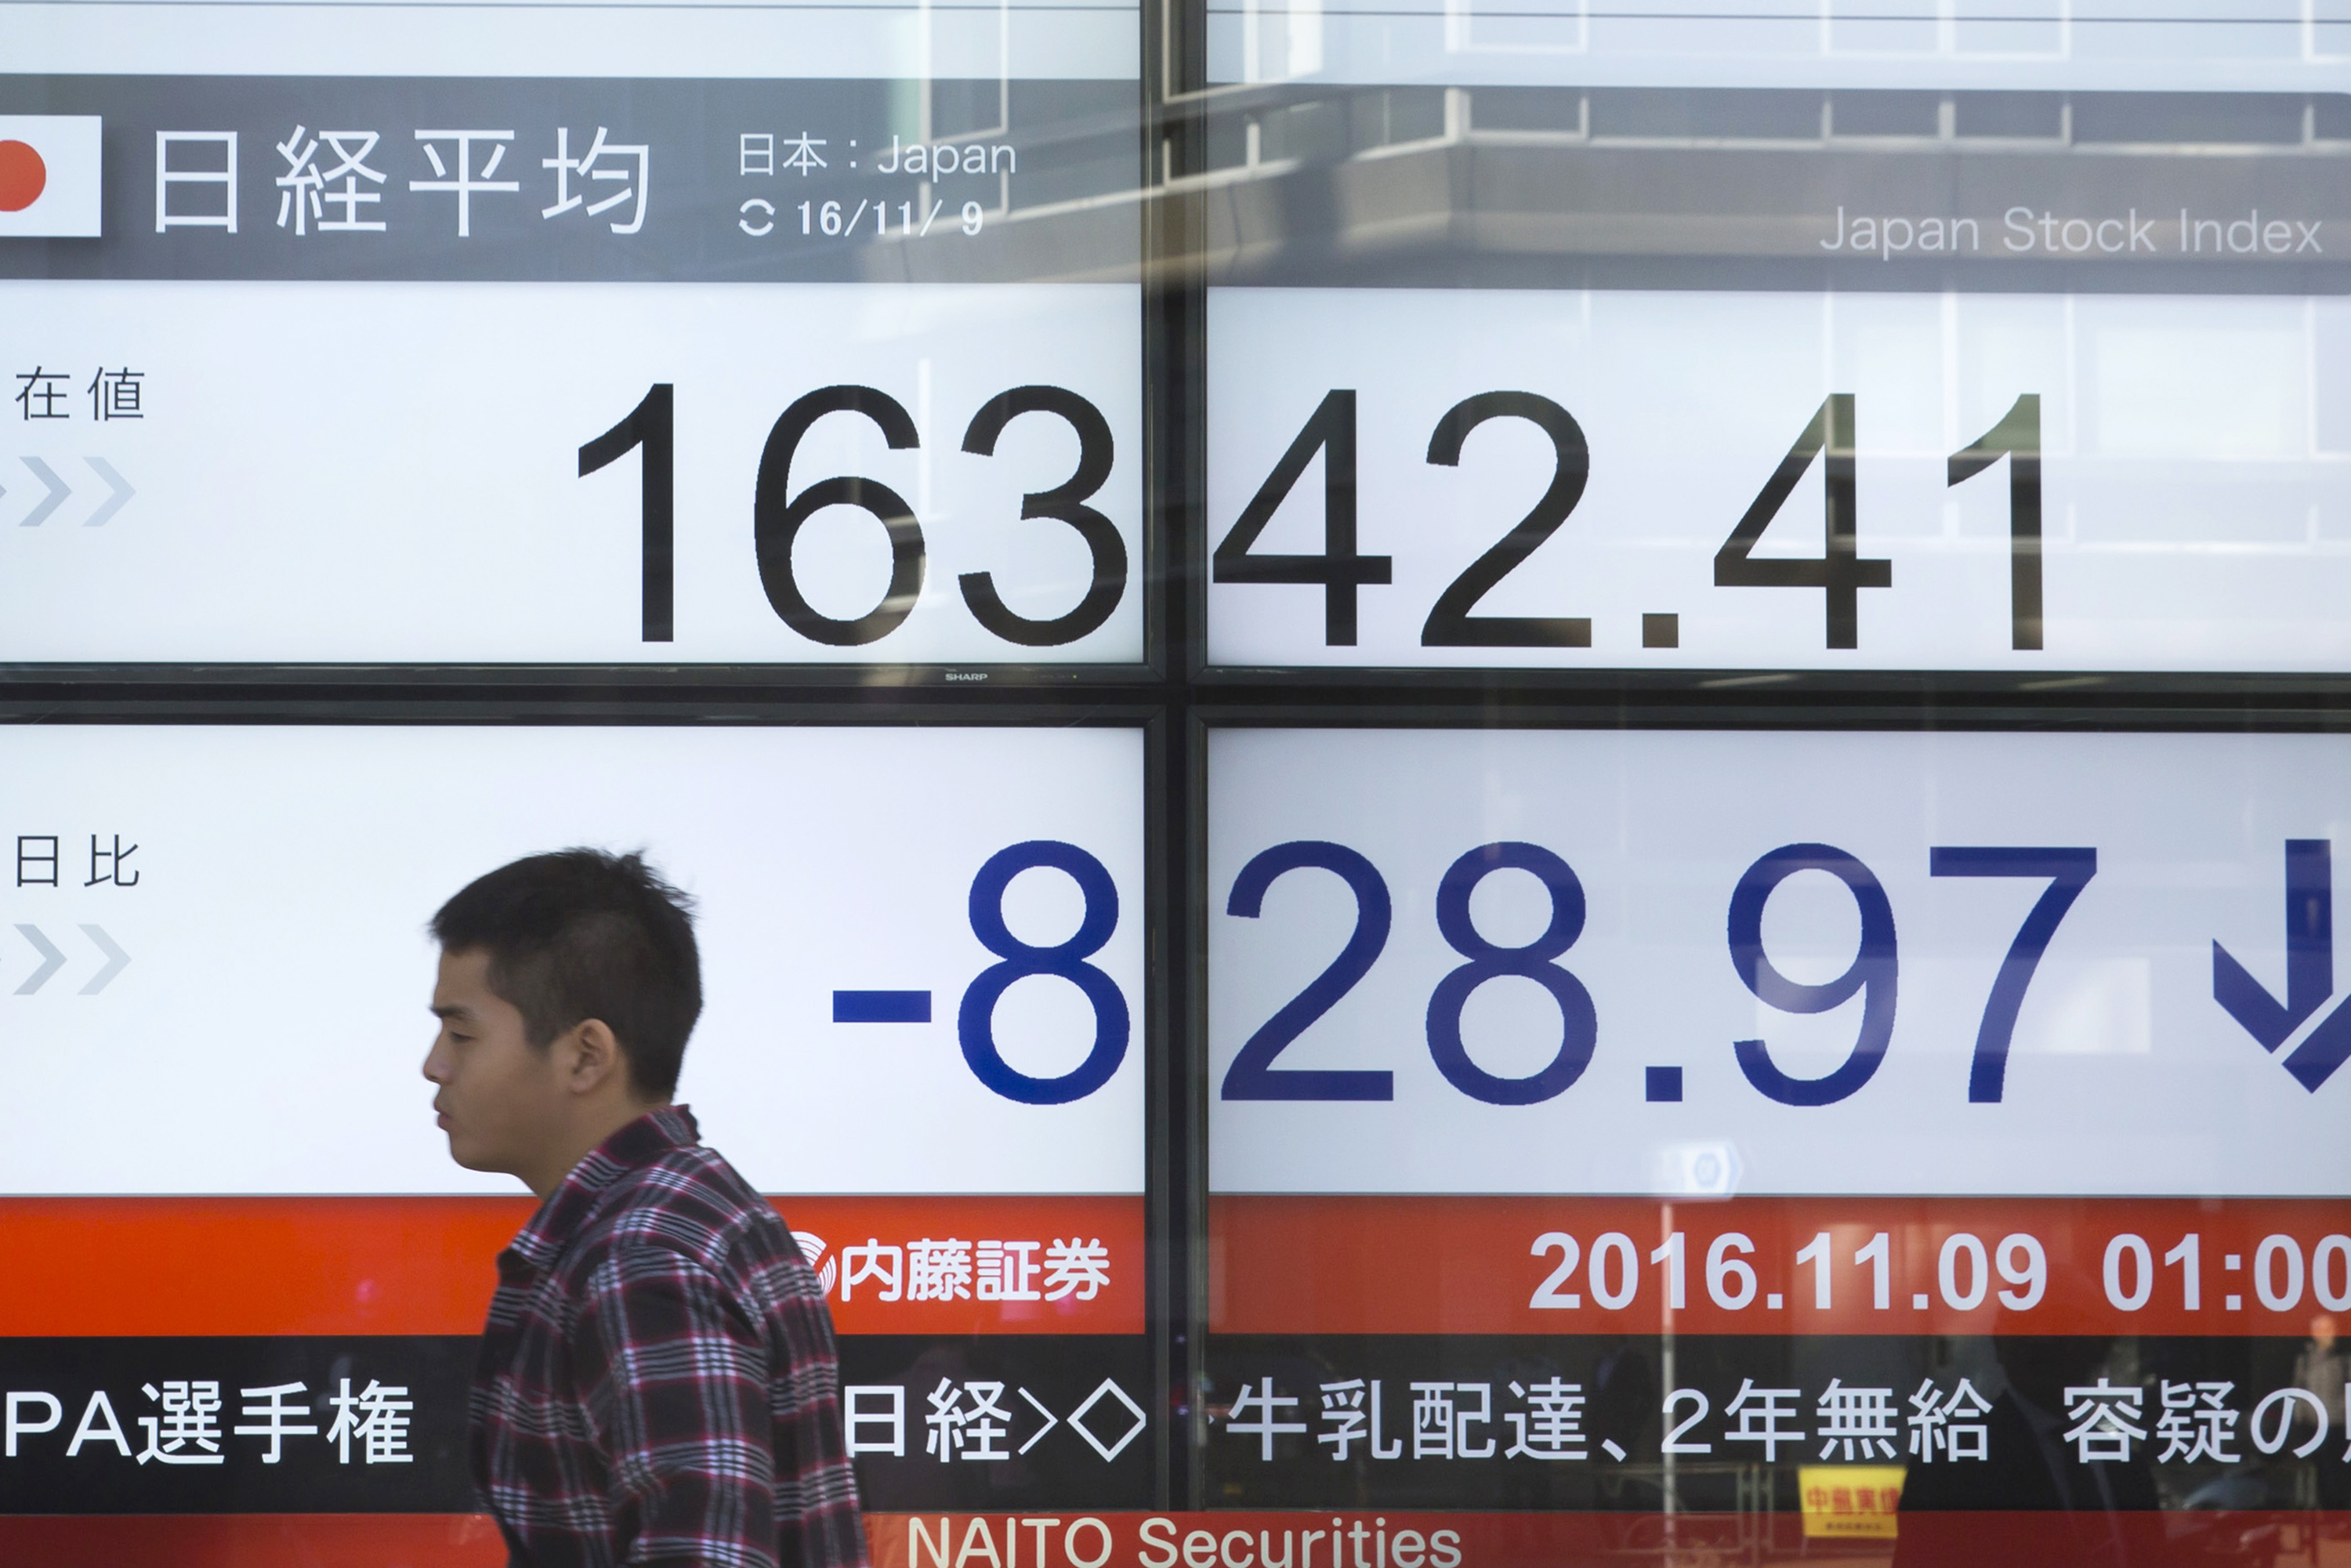 Japan Reaction to The U.S. Presidential Election Result